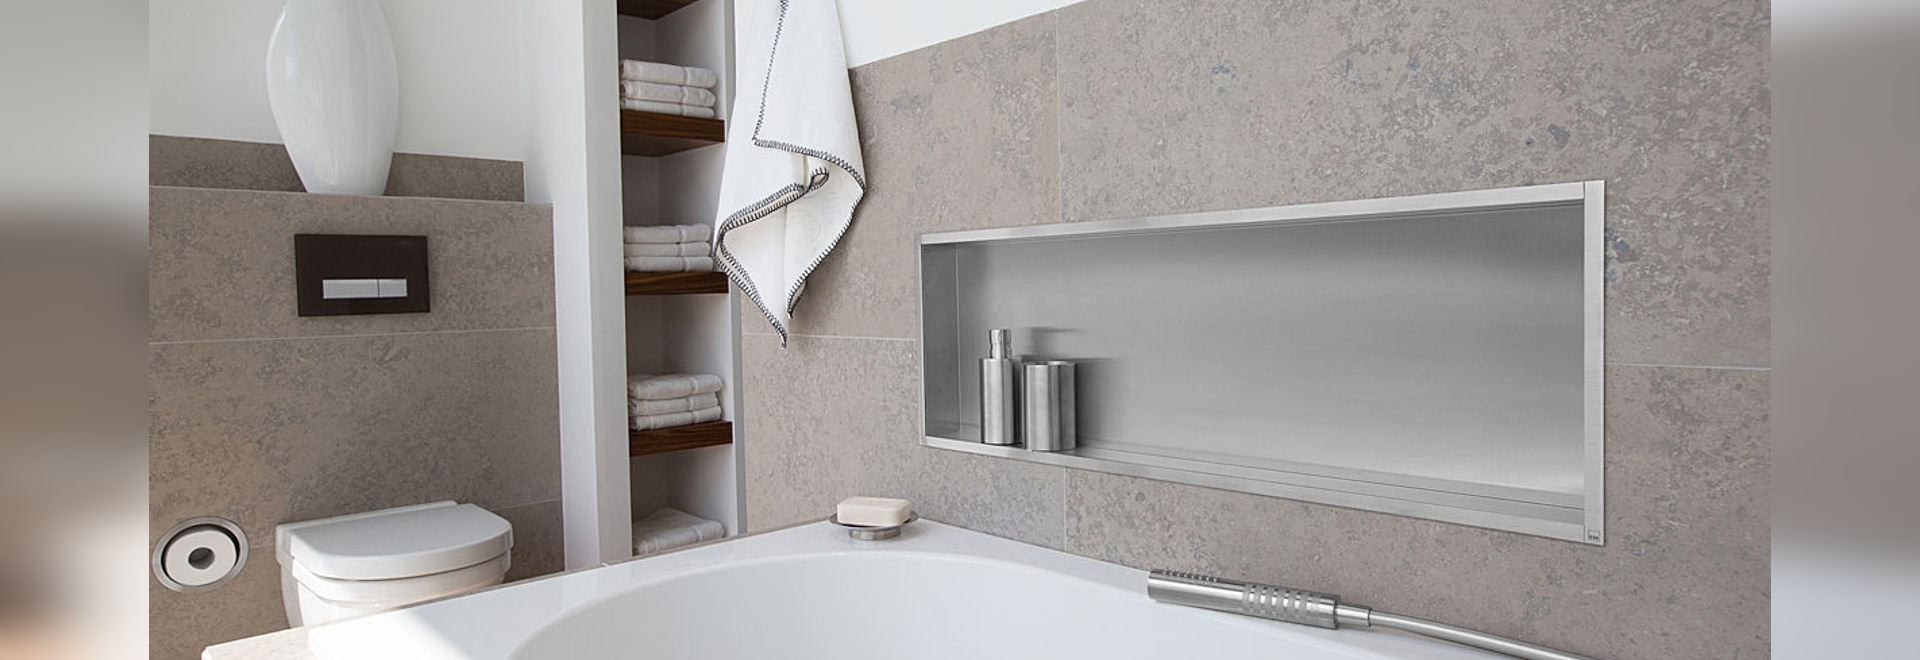 Niches in bathroom walls - Container Box Elegant Wall Niches